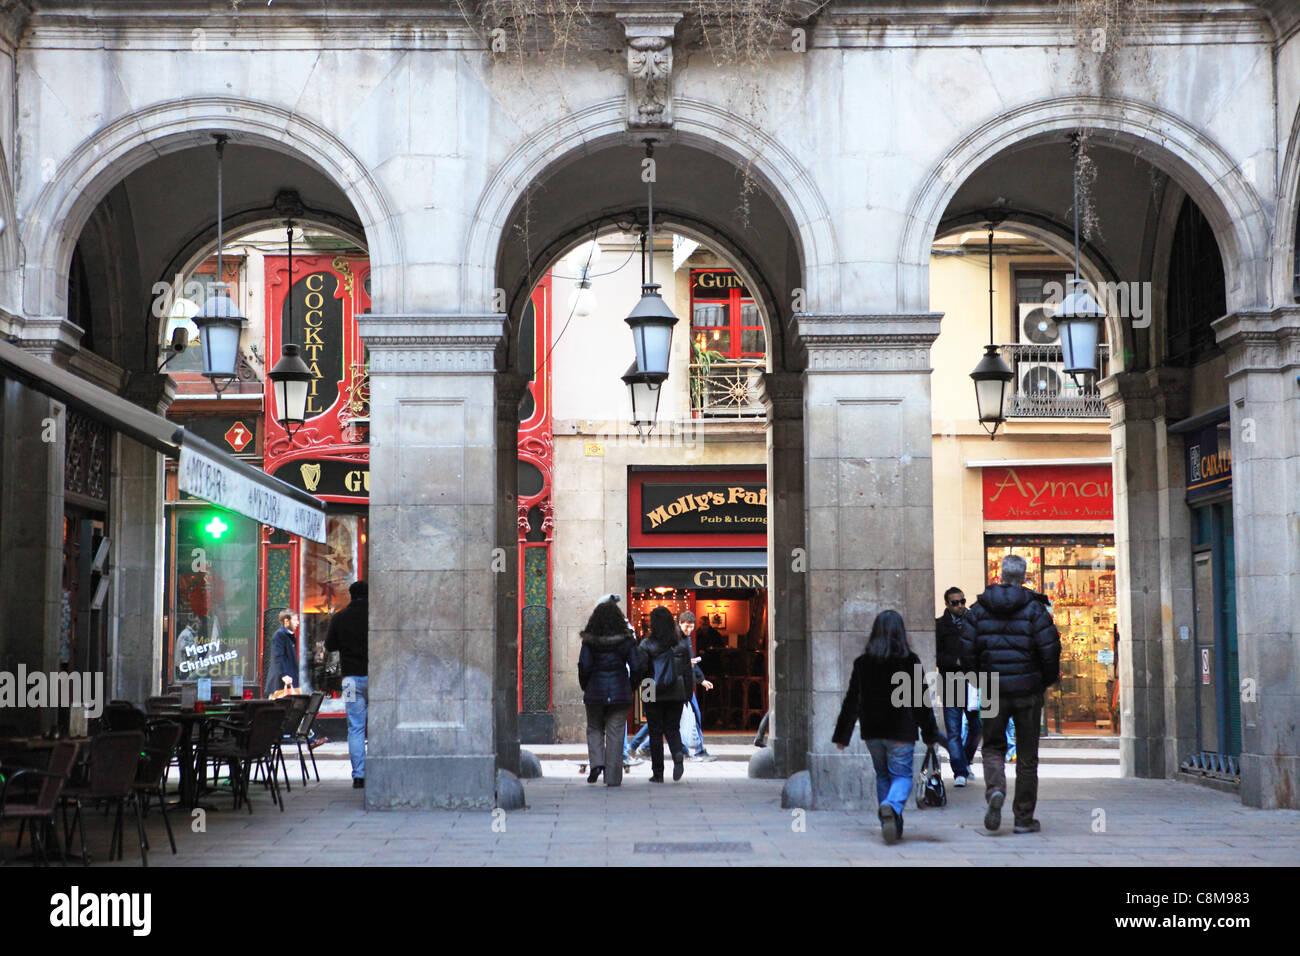 Looking through the arches from Placa Reial to Carrer de Ferran, in the Gothic Quarter in Barcelona at Christmas - Stock Image